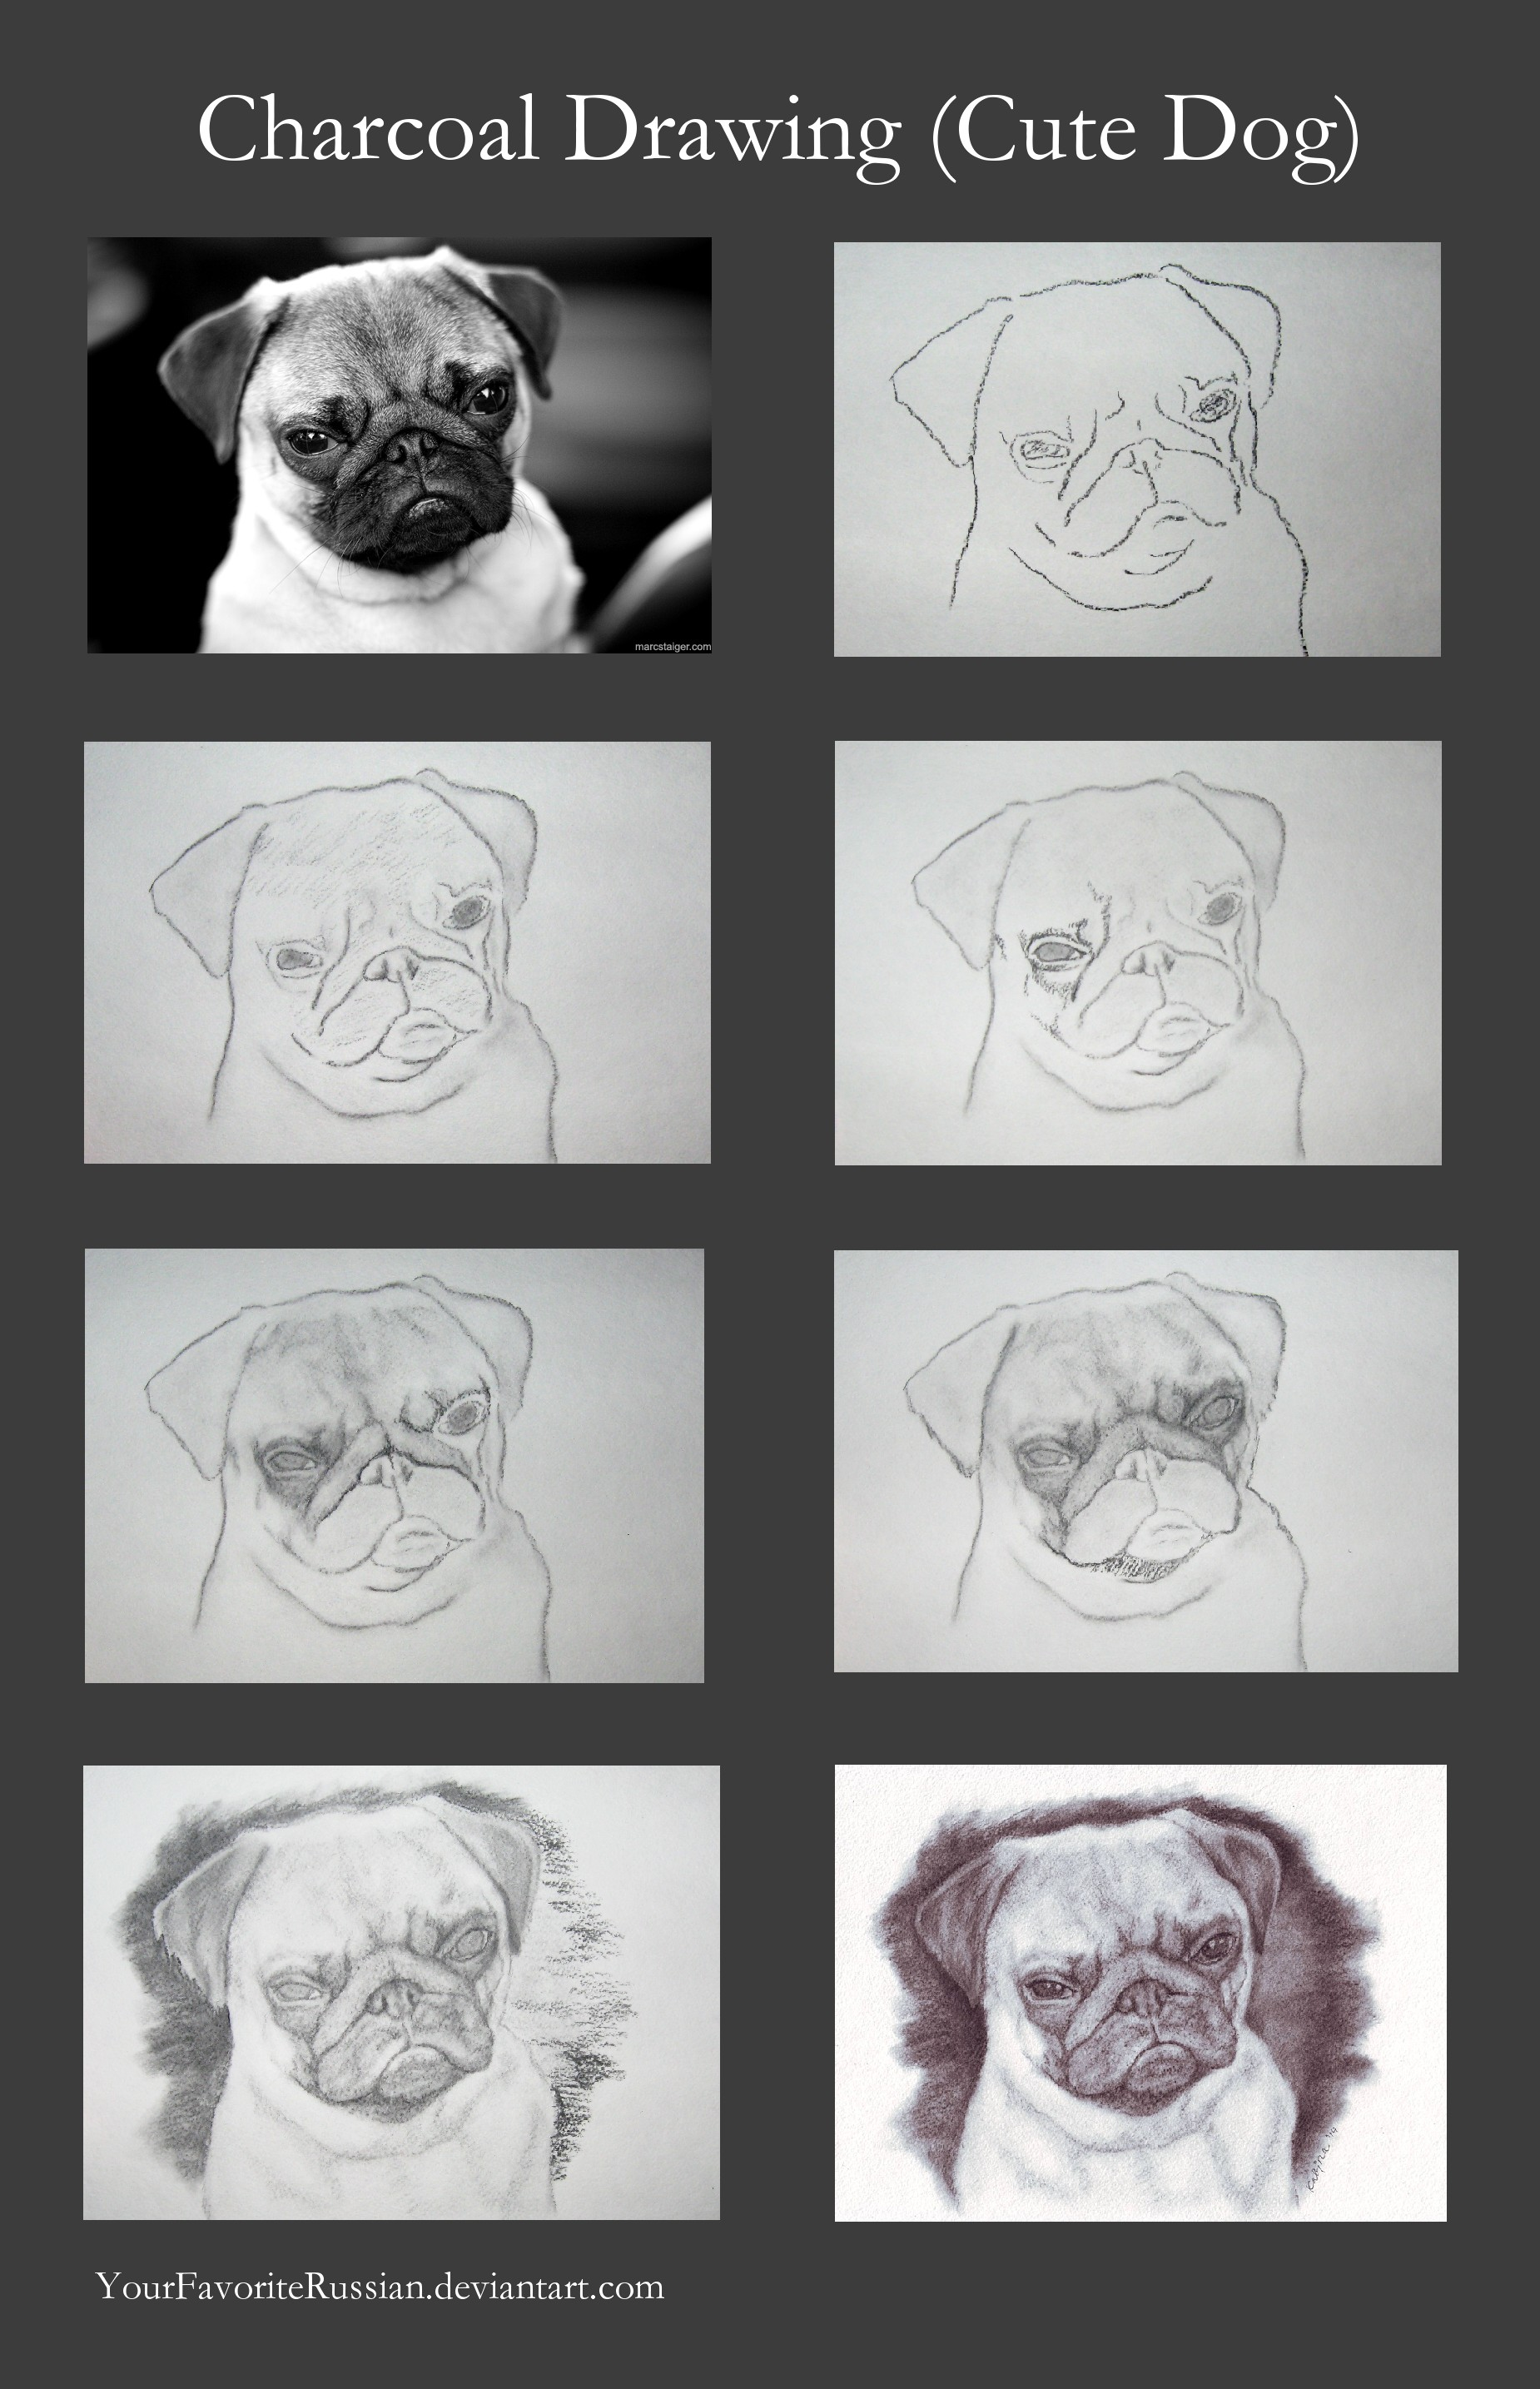 Charcoal drawing tutorial cute dog by yourfavoriterussian on